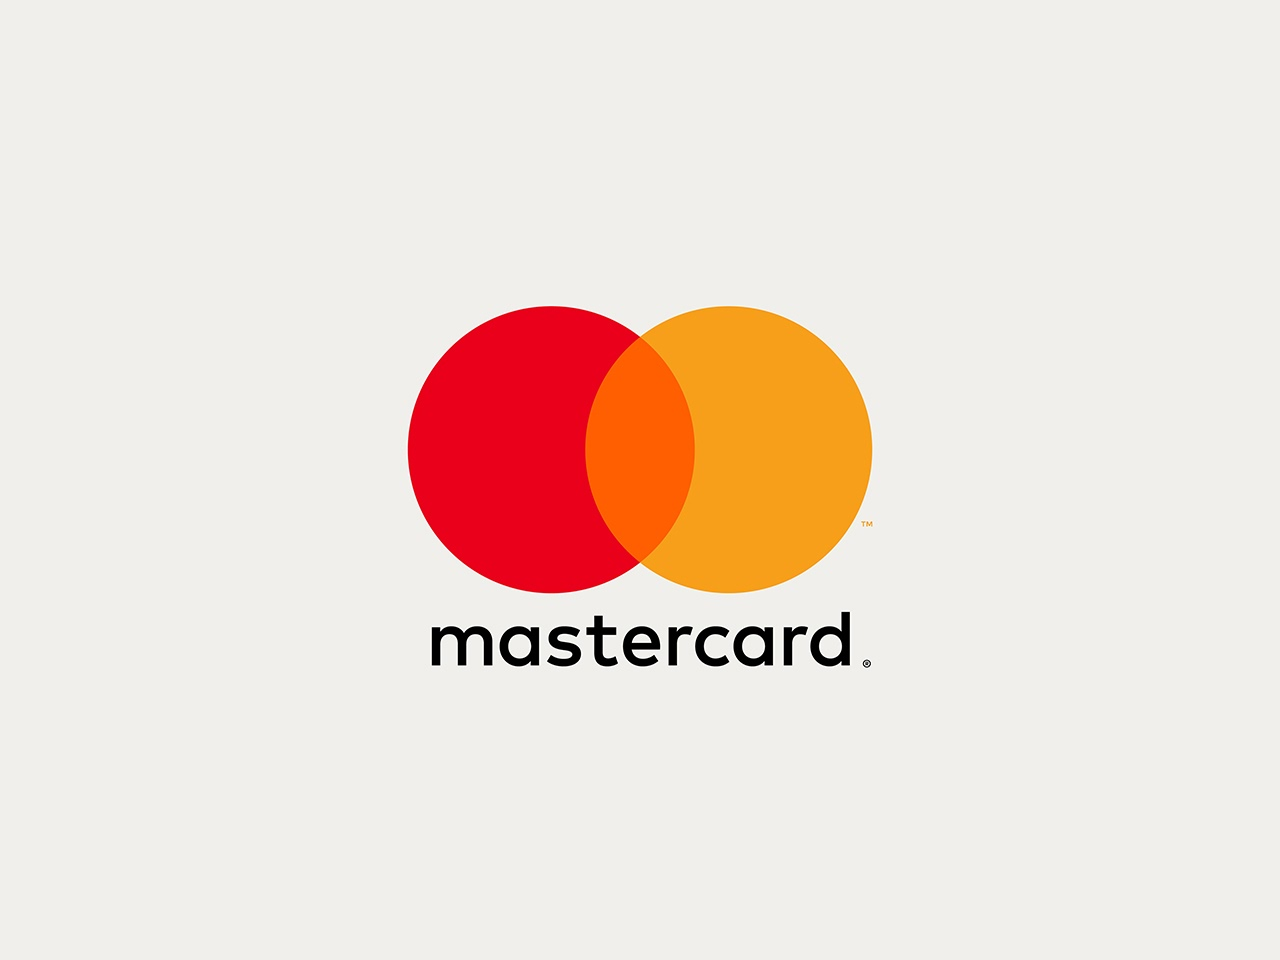 After a design makeover, Mastercard just got really cool again